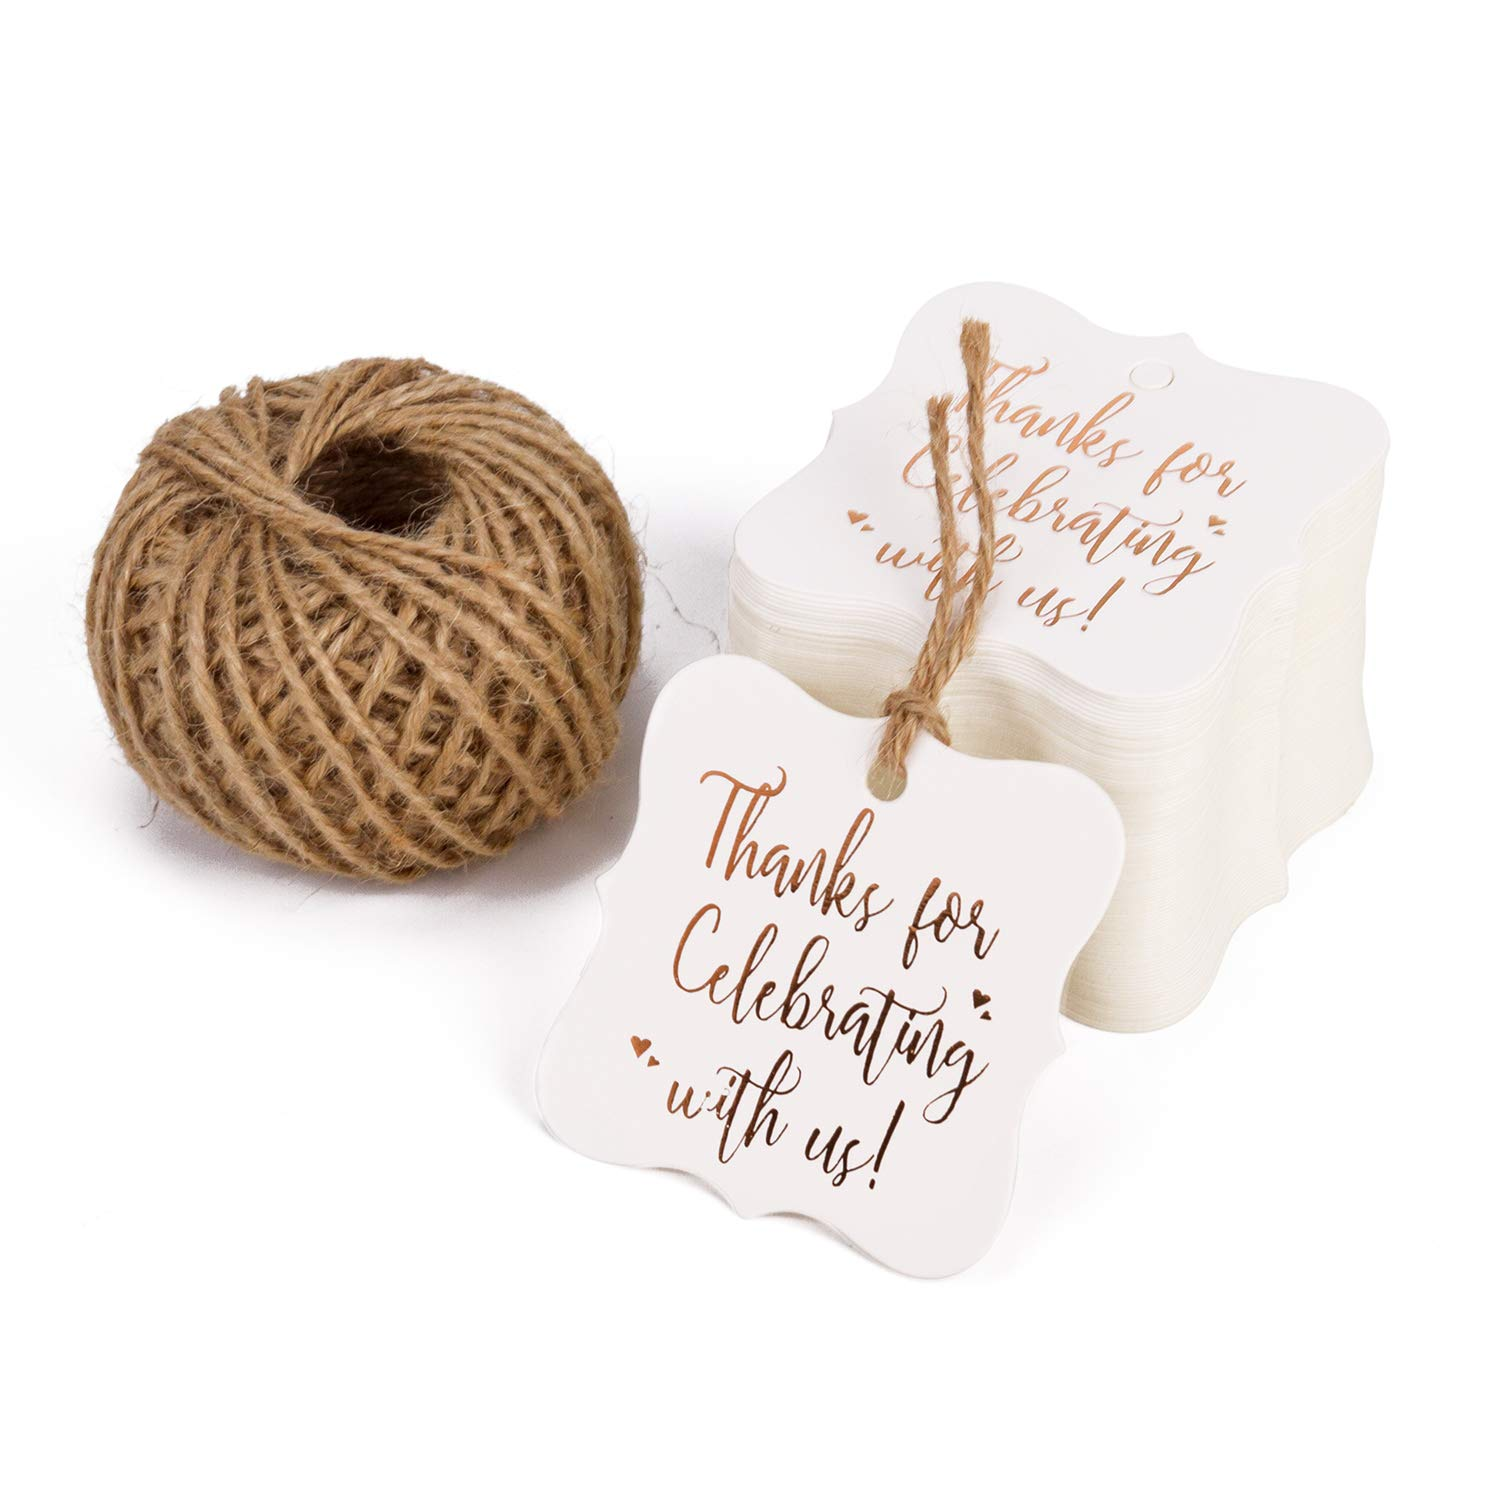 WRAPAHOLIC Gift Tags with String - 100PCS White Kraft Thank You Paper Tags with 100 Feet Natural Jute Twine for Wedding, Baby Shower, Party Favors by WRAPAHOLIC